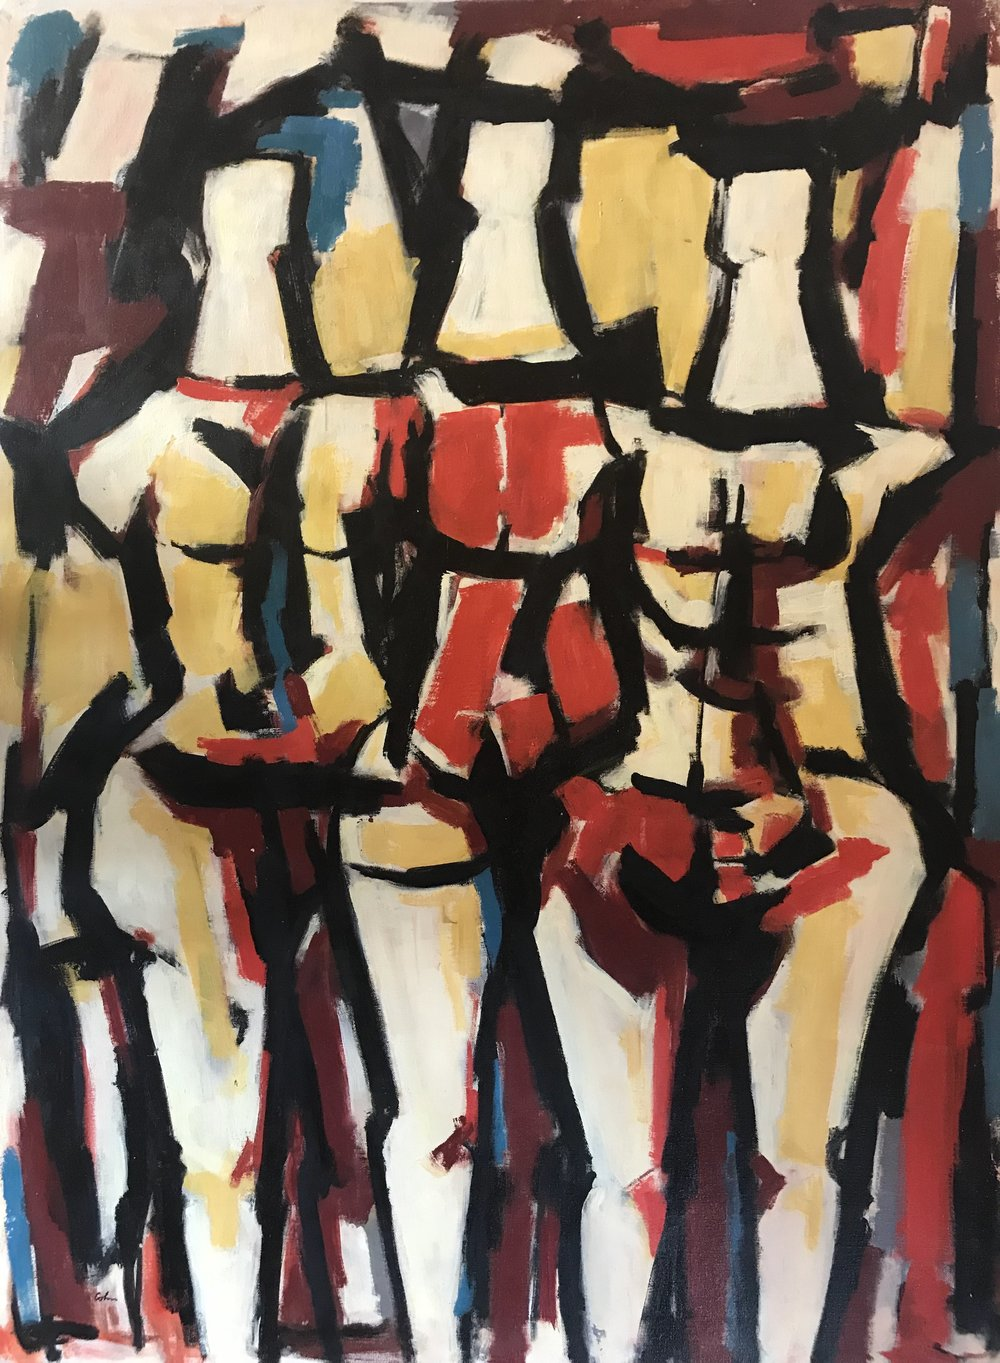 "Three Standing Figures 643-1976 by Max Arthur Cohn 24"" x 32"" Oil on Canvas 1970"